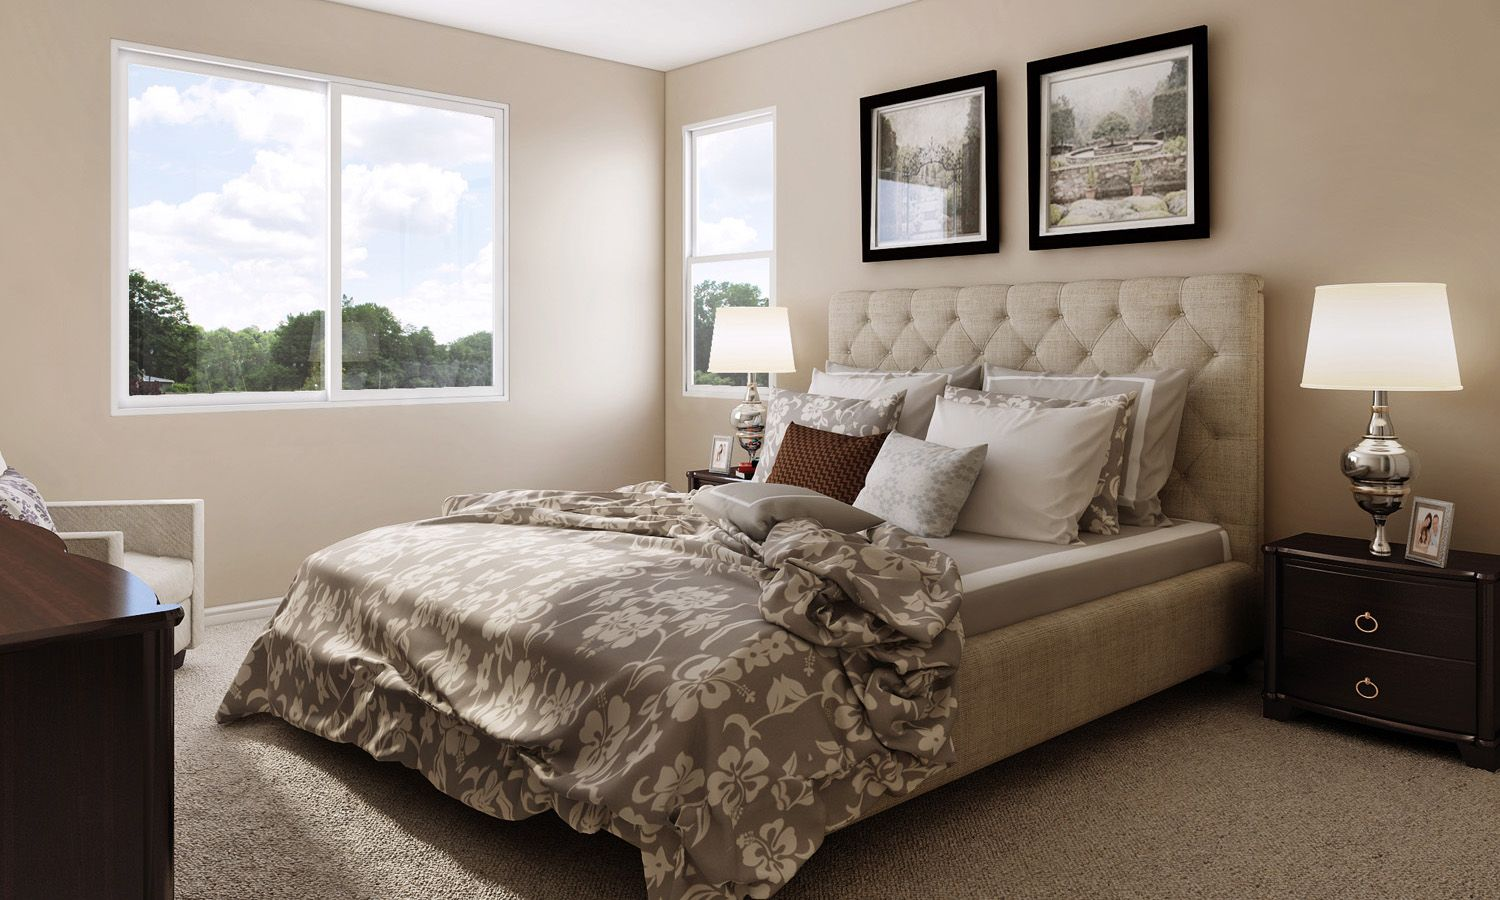 Bedroom featured in The Carrera By Stonefield Home in Merced, CA